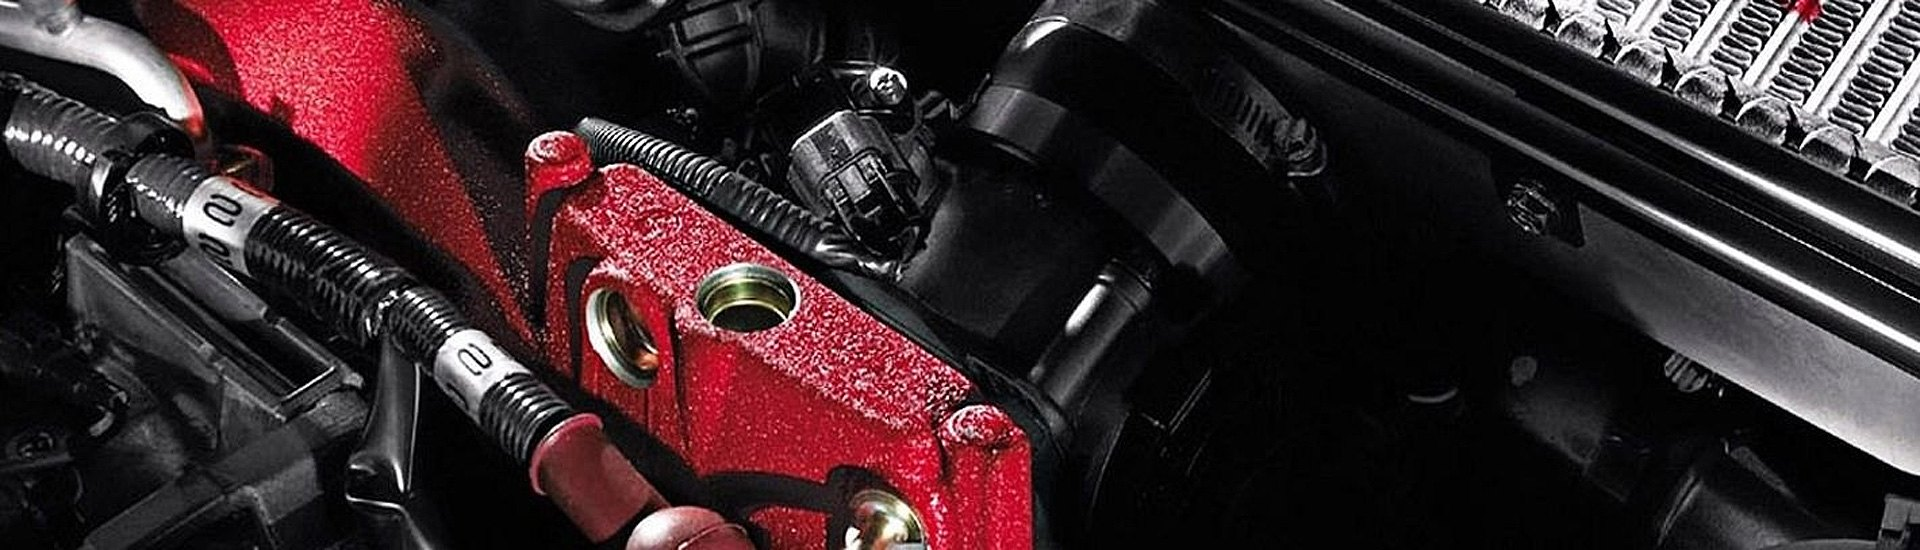 Engine Tune Up Basics